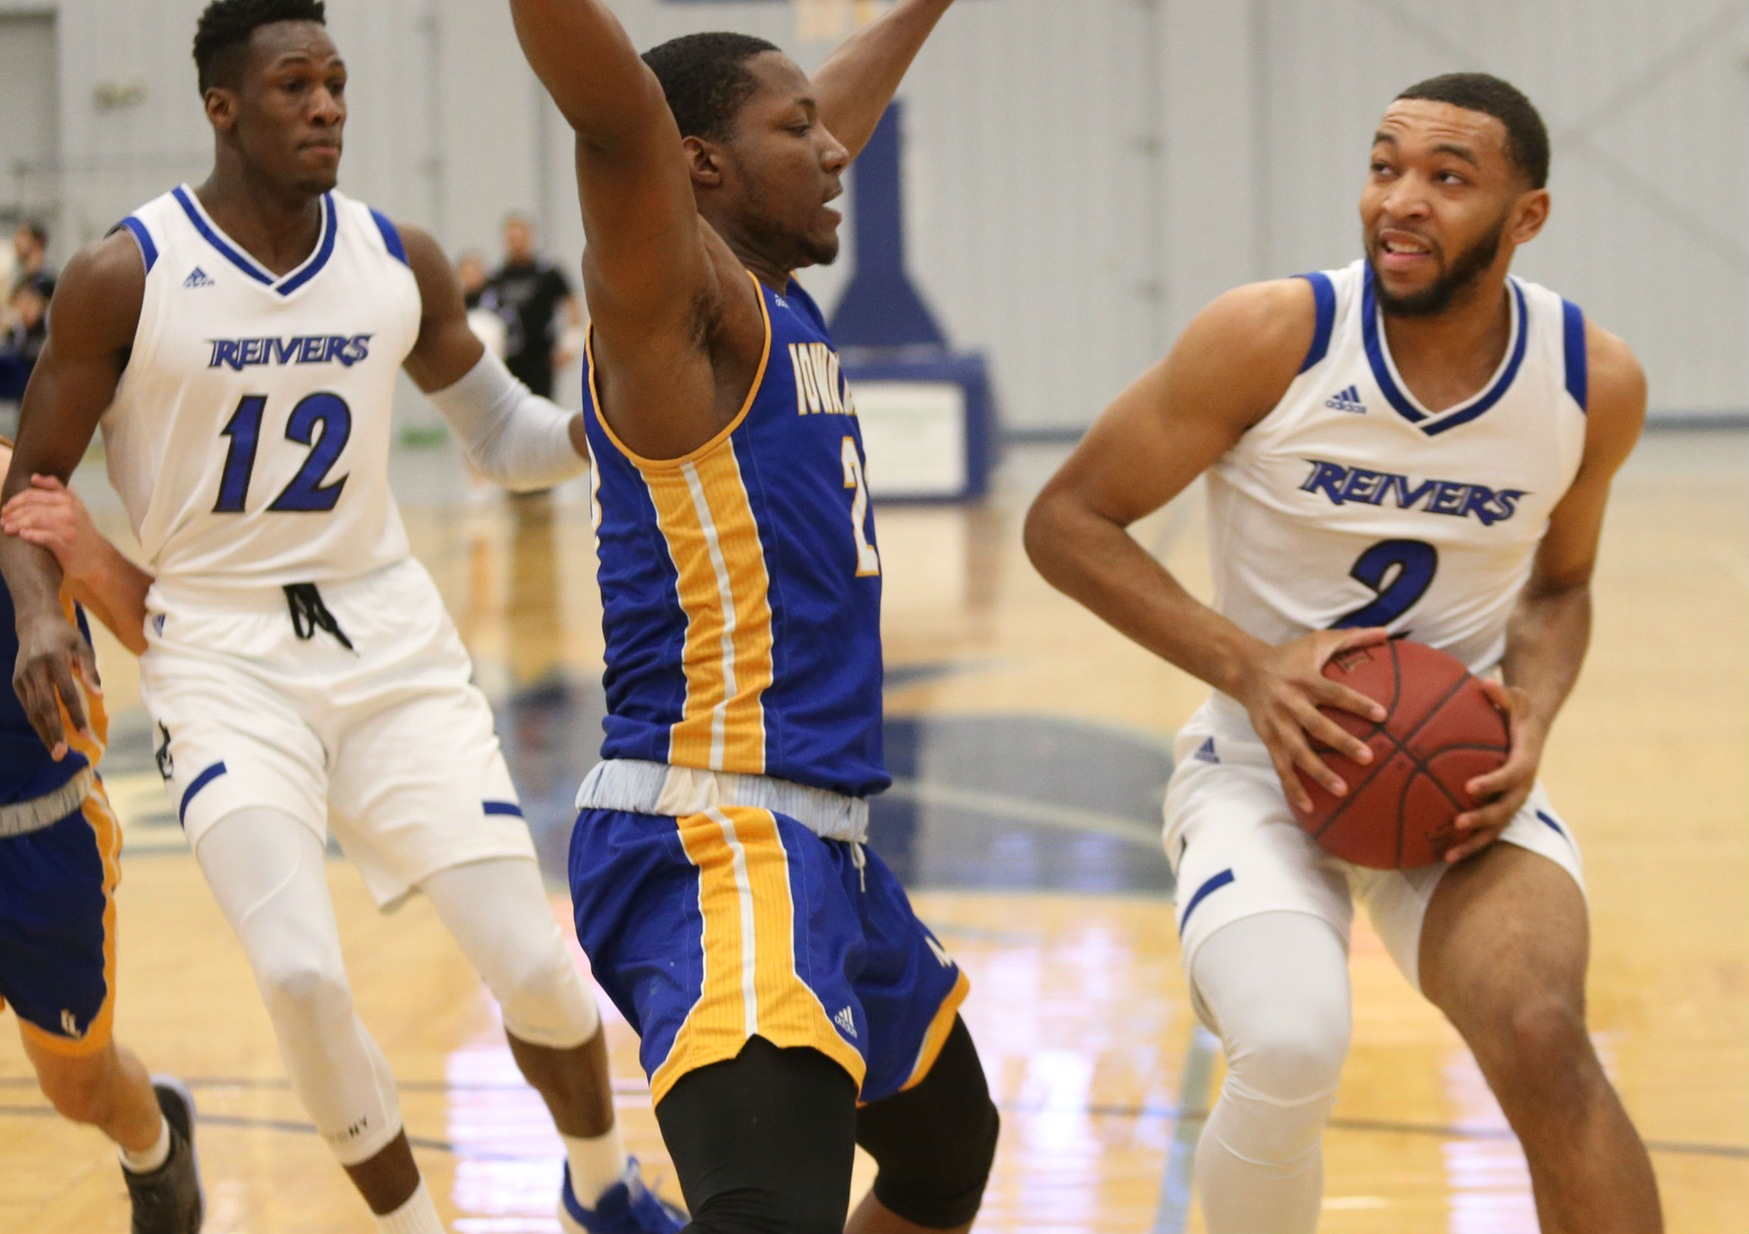 "Christian Bentley's (#2) 19 point, 4 assist evening helped Iowa Western ""return the favor"" against a Sunrise Christian team that handed the Reivers their first loss of the season back in November."